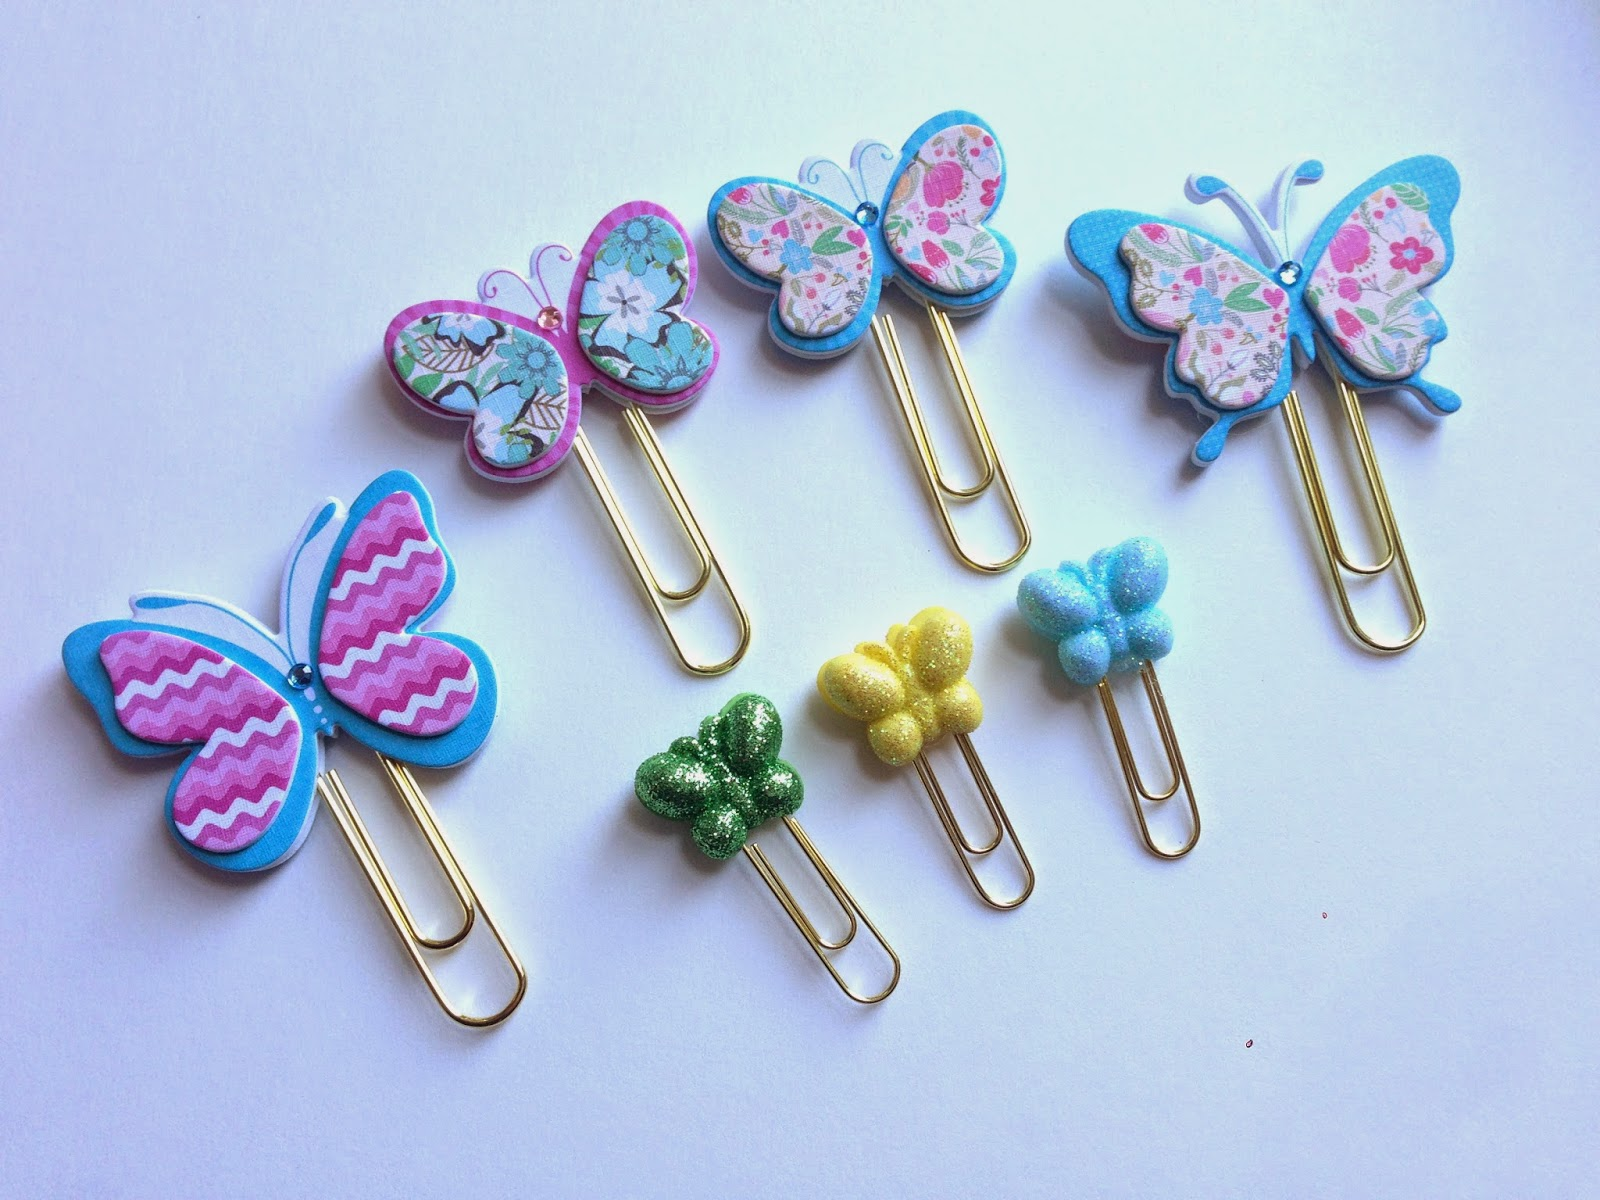 Crafts Using Paper Clips